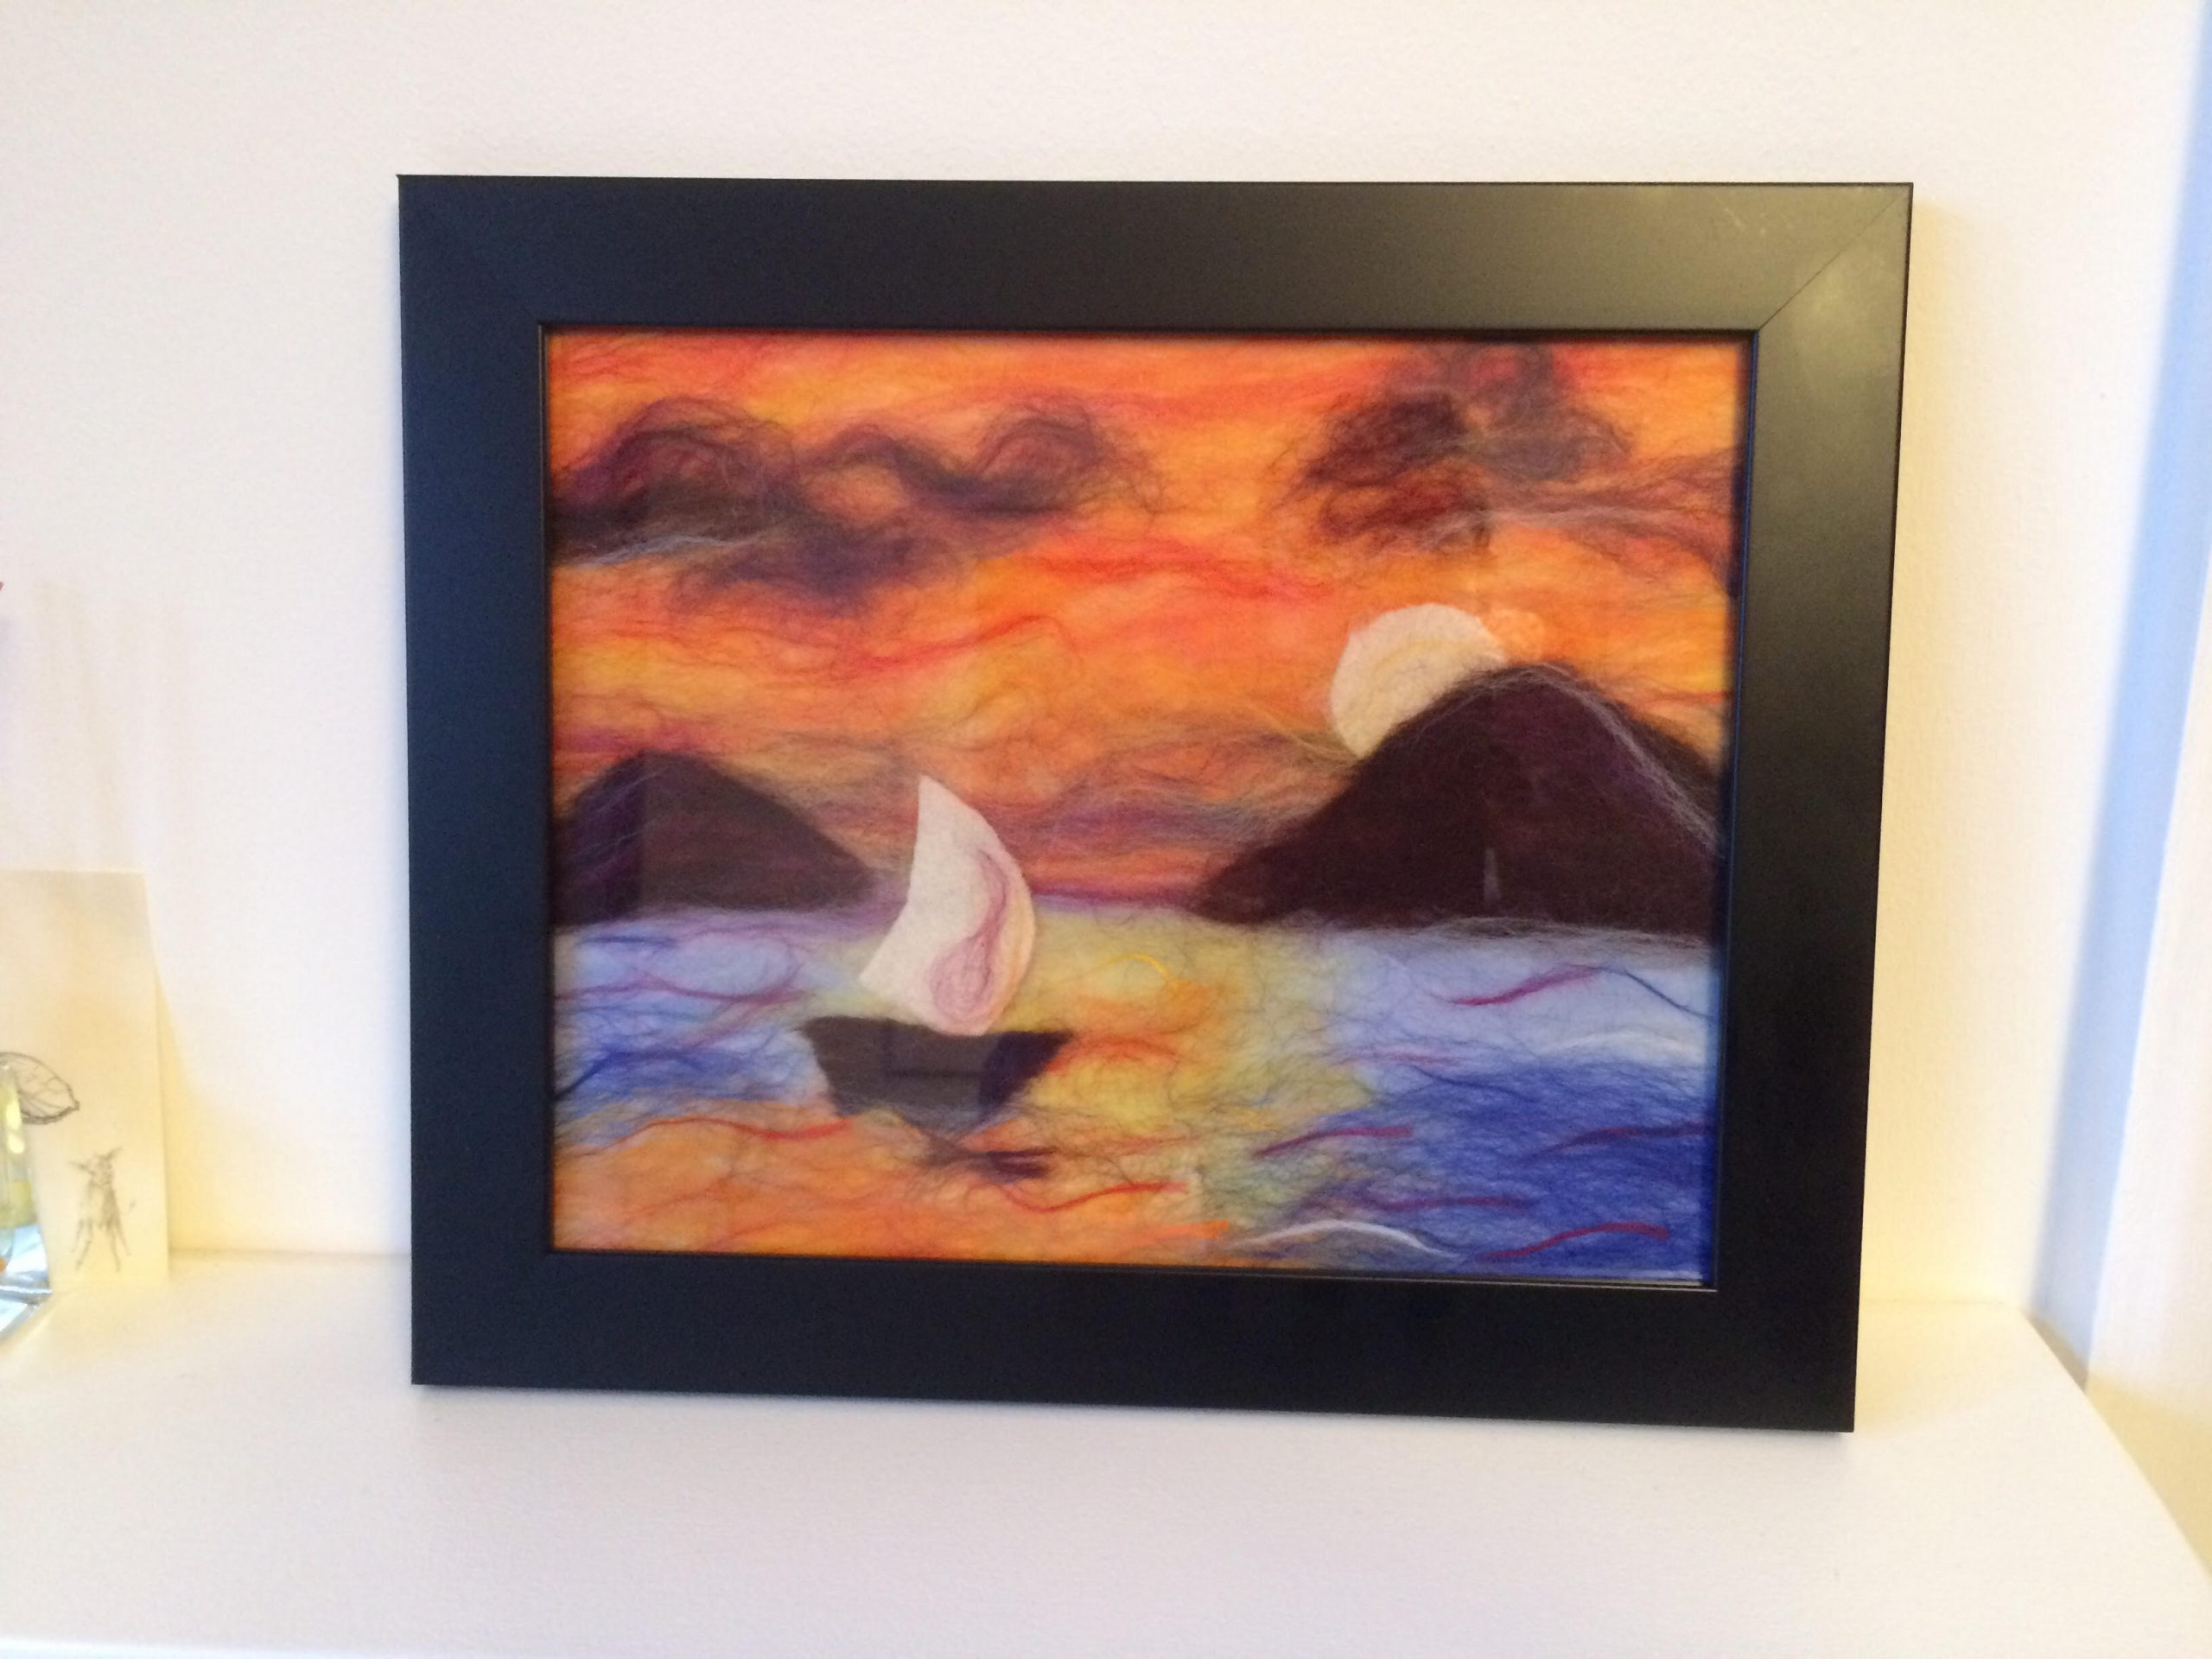 Sunset wool painting made at zoom art textiles course with artist Raya Brown